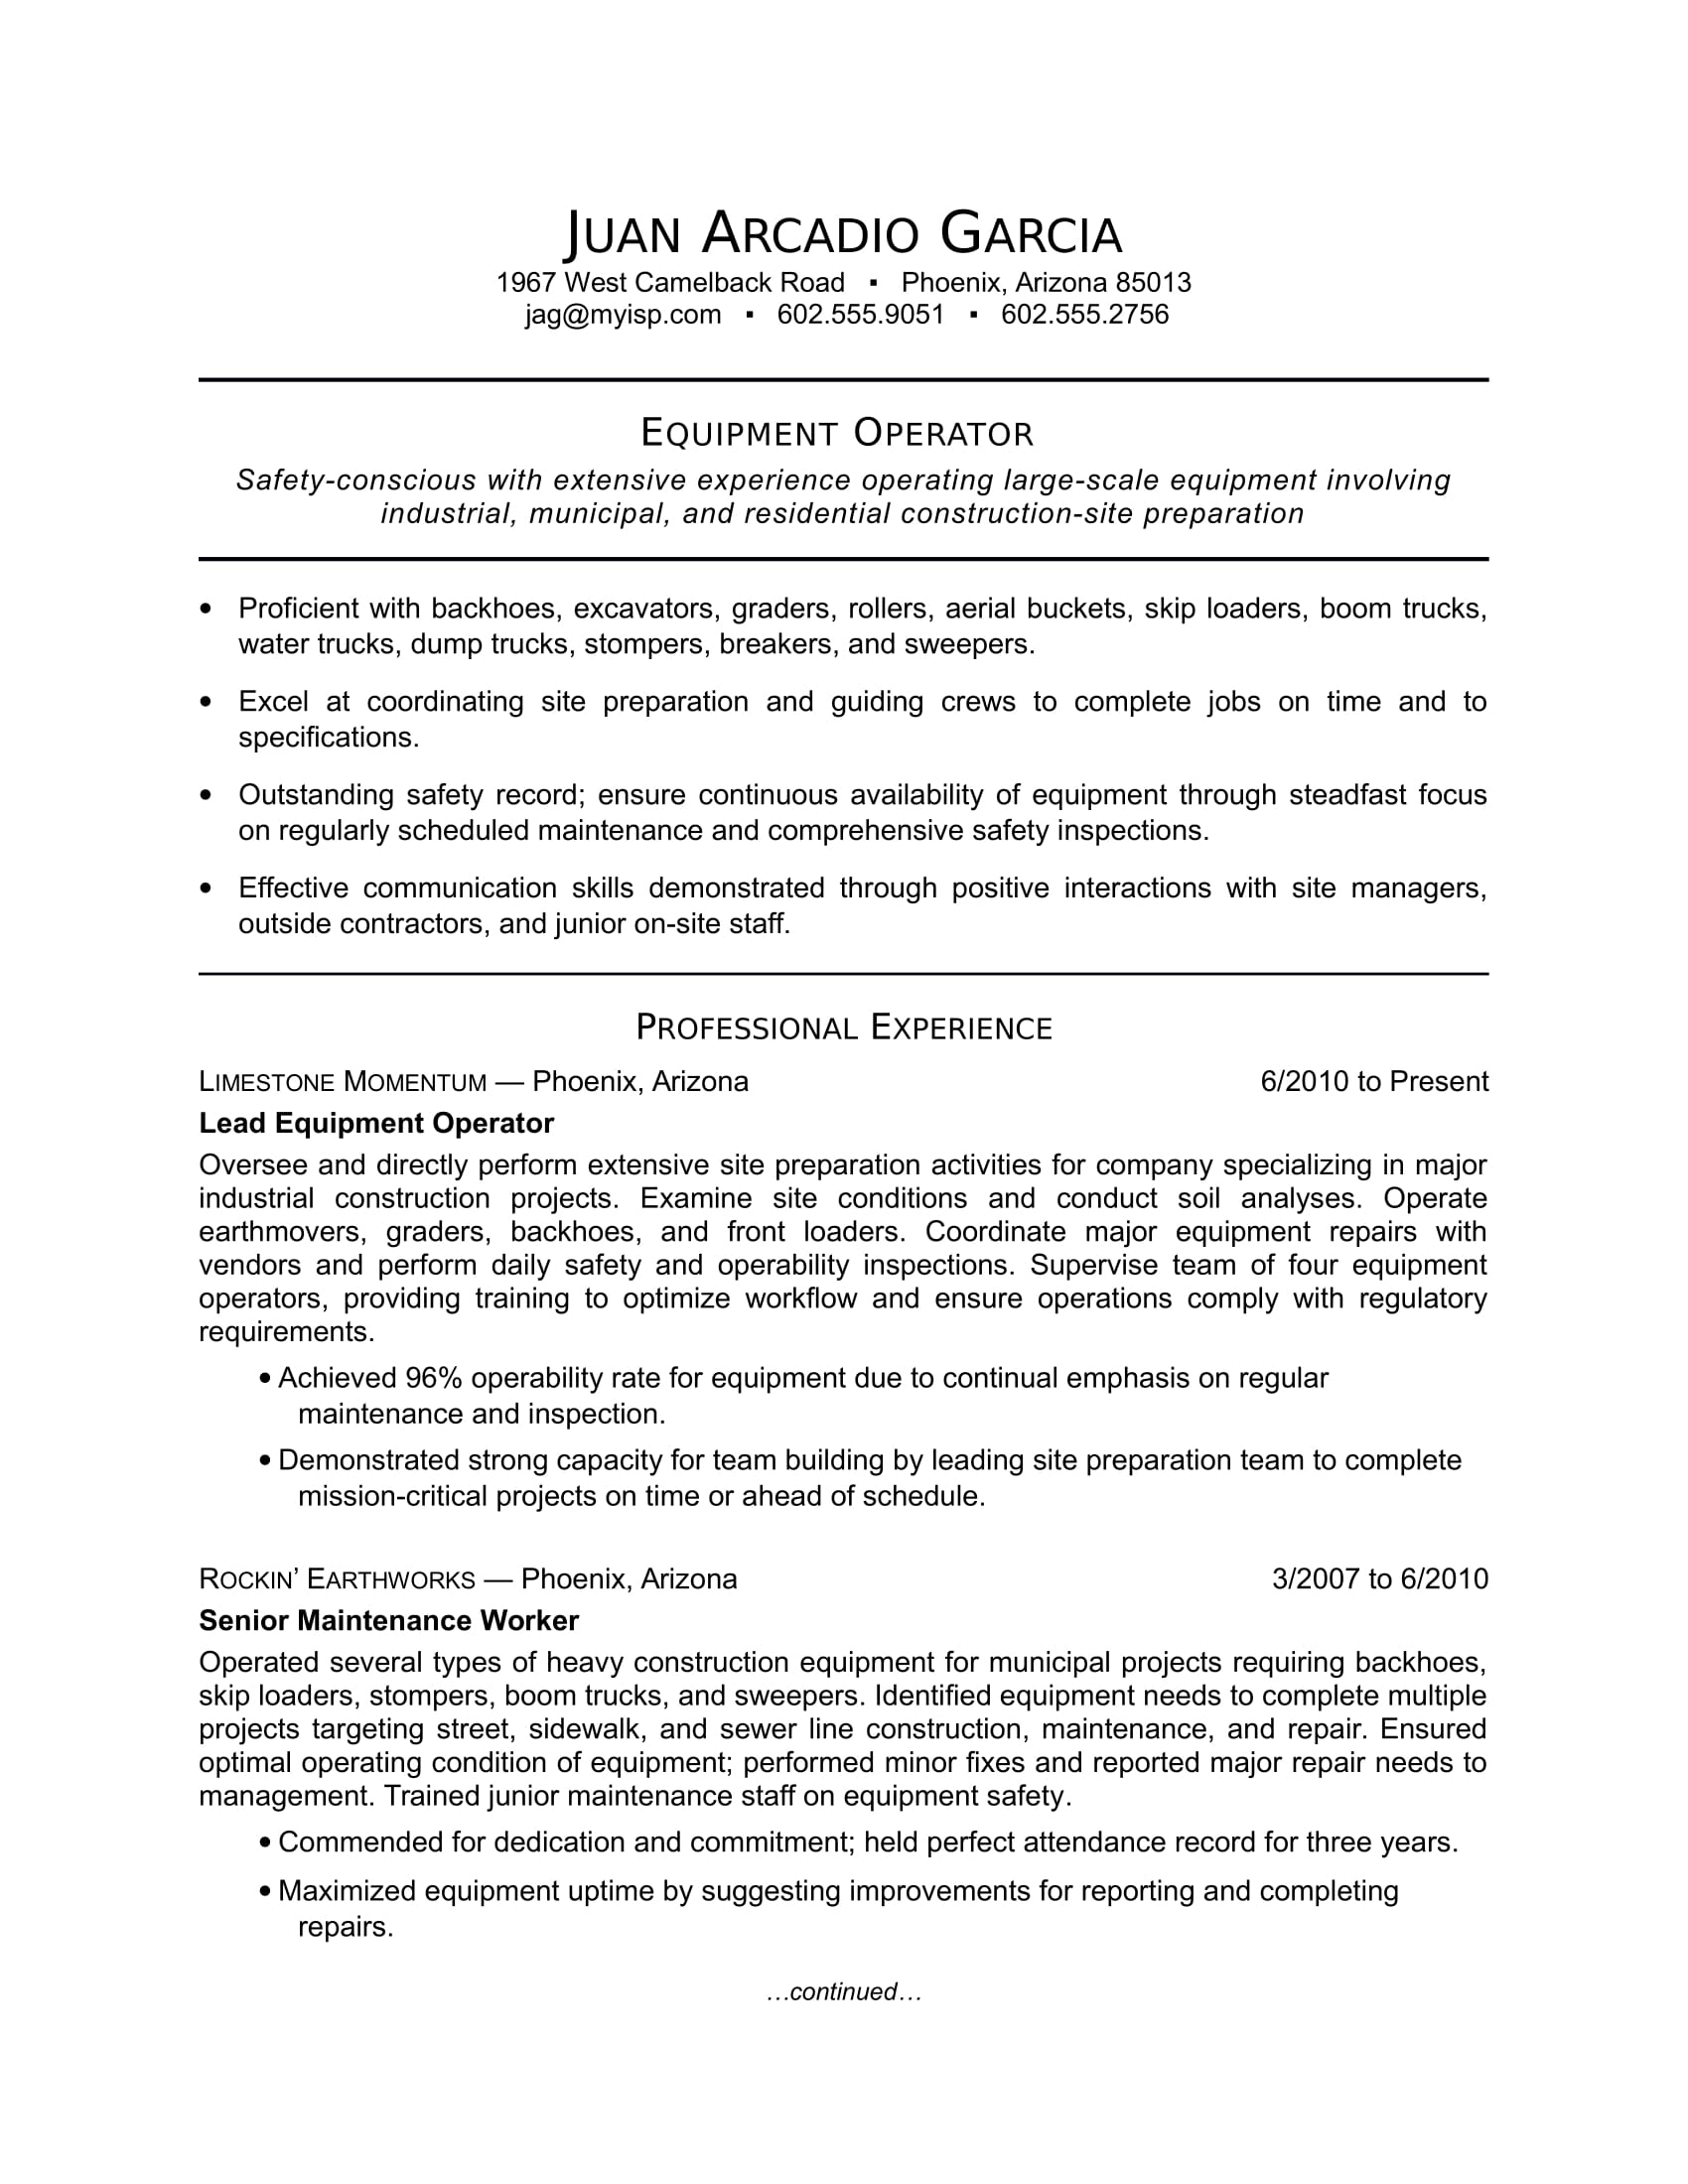 Sample Resume For An Equipment Operator